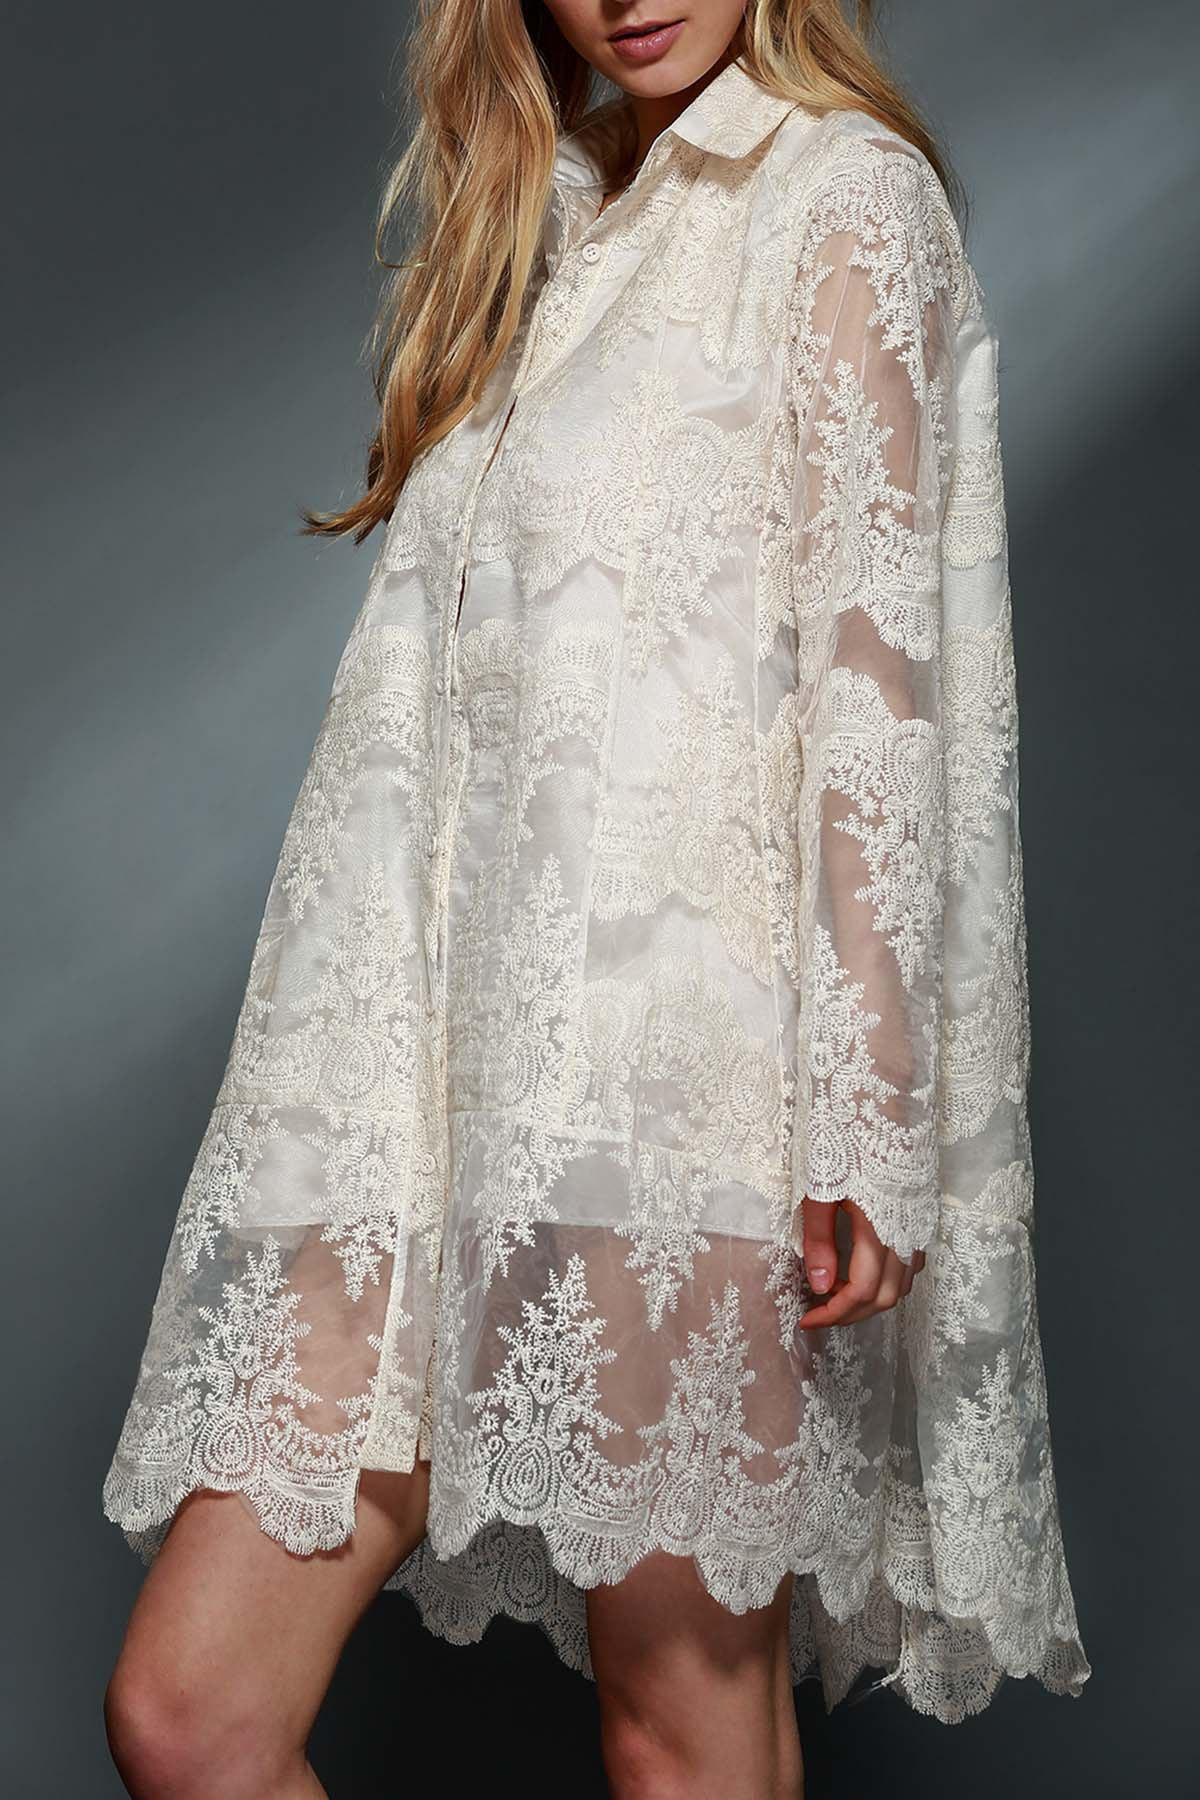 Ladylike Women's Polo Collar See-Through Long Sleeve Lace Dress - WHITE S